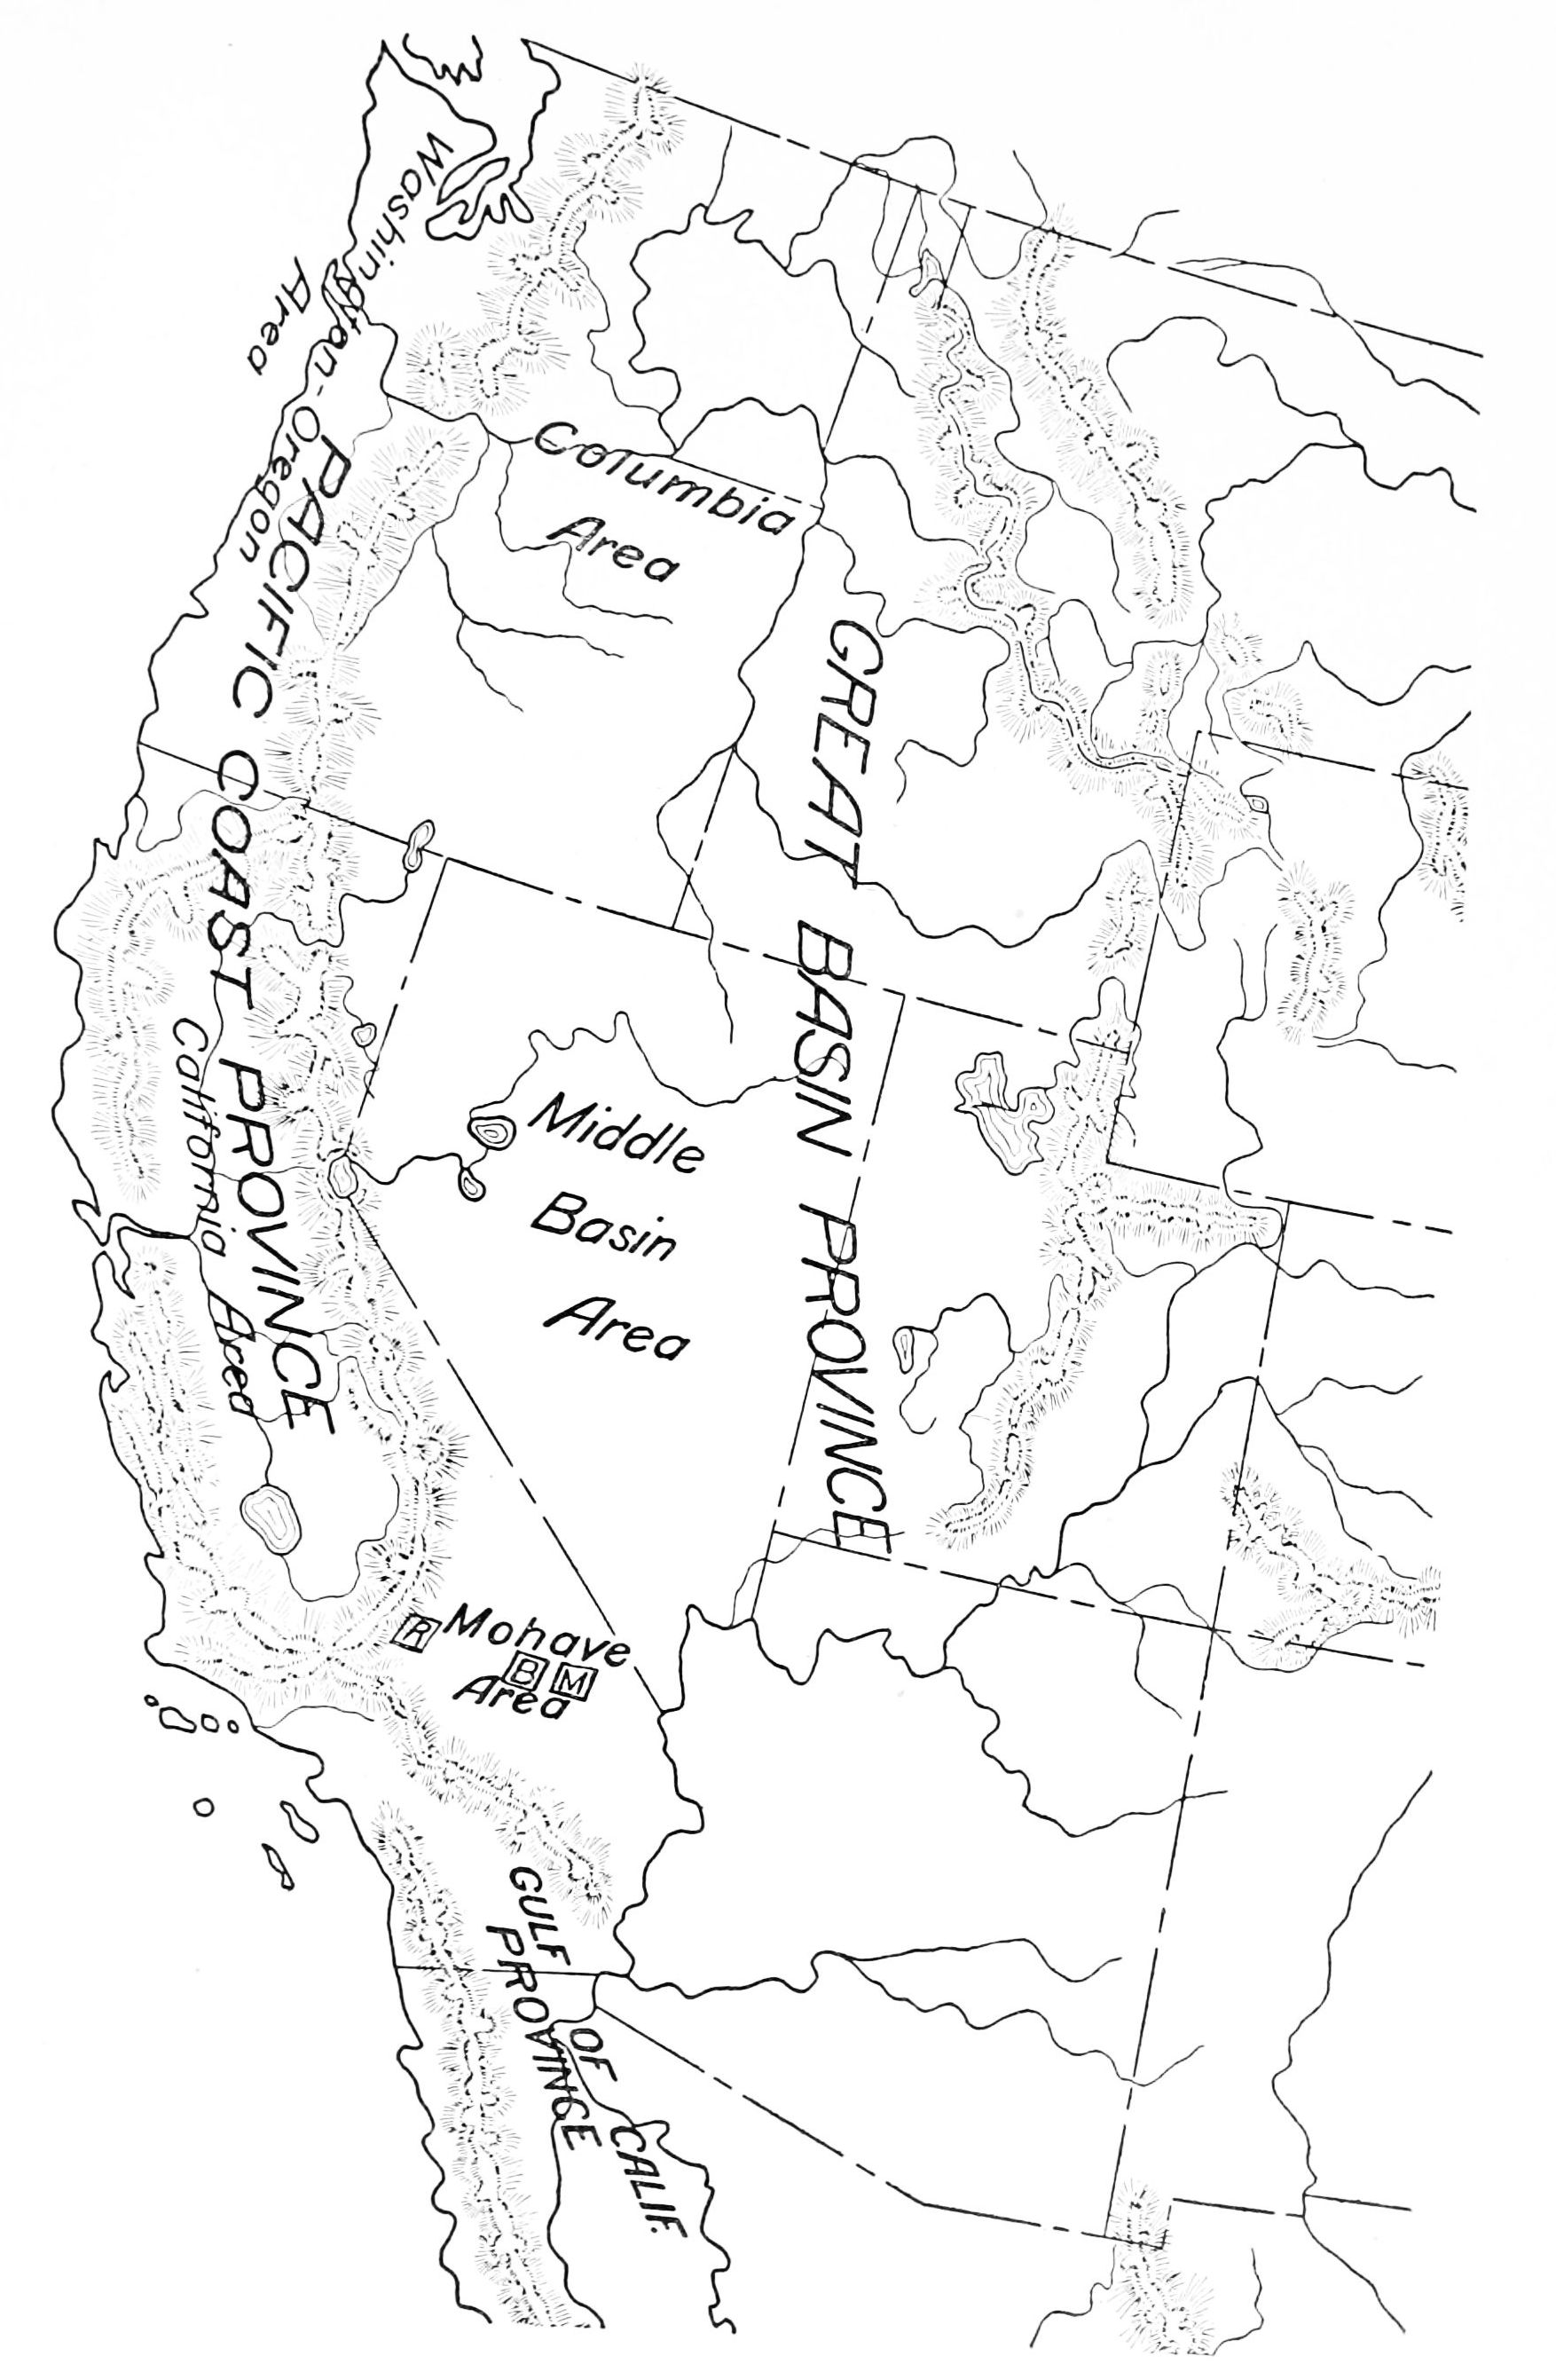 PSM V86 D251 Outline of the mohave region and the pacific coast.jpg